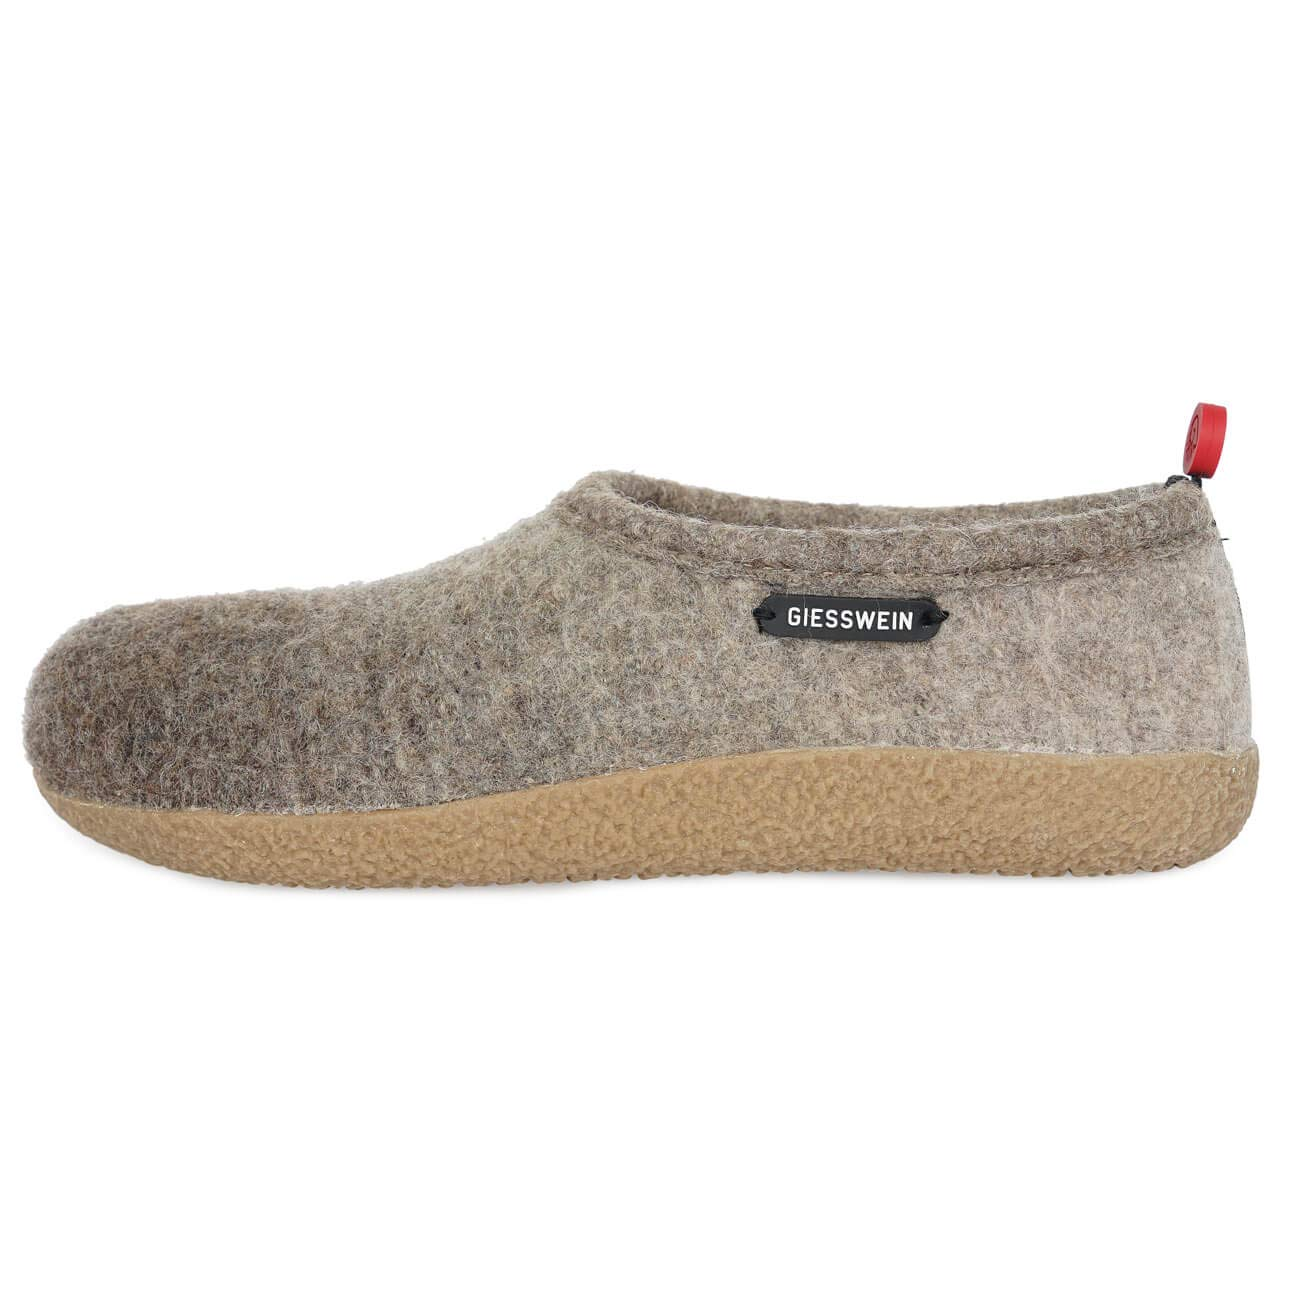 Giesswein Vahldorf, Gris Vahldorf, Chaussons Bas Femme Gris 262) (Taupe 262) 90be4c4 - reprogrammed.space